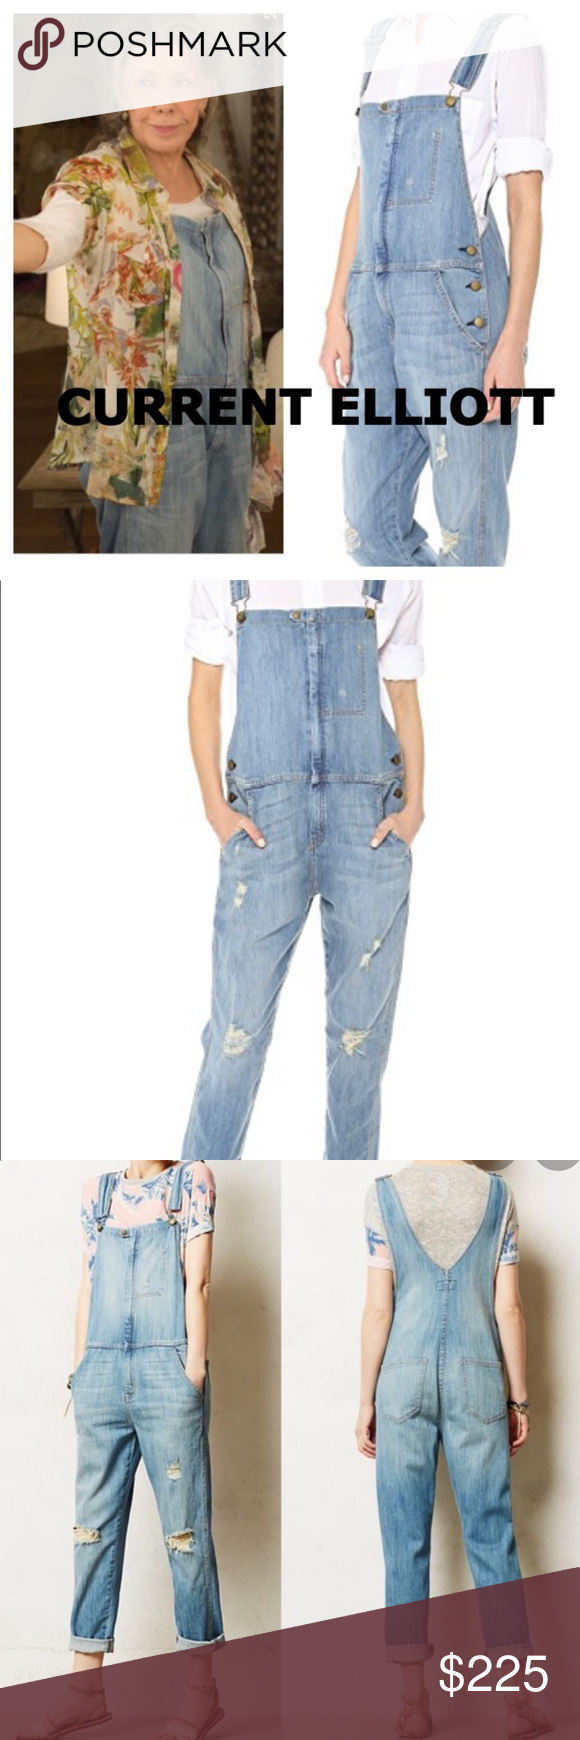 Current Elliott Ranch Hand Overalls Overalls Clothes Design Current Elliott